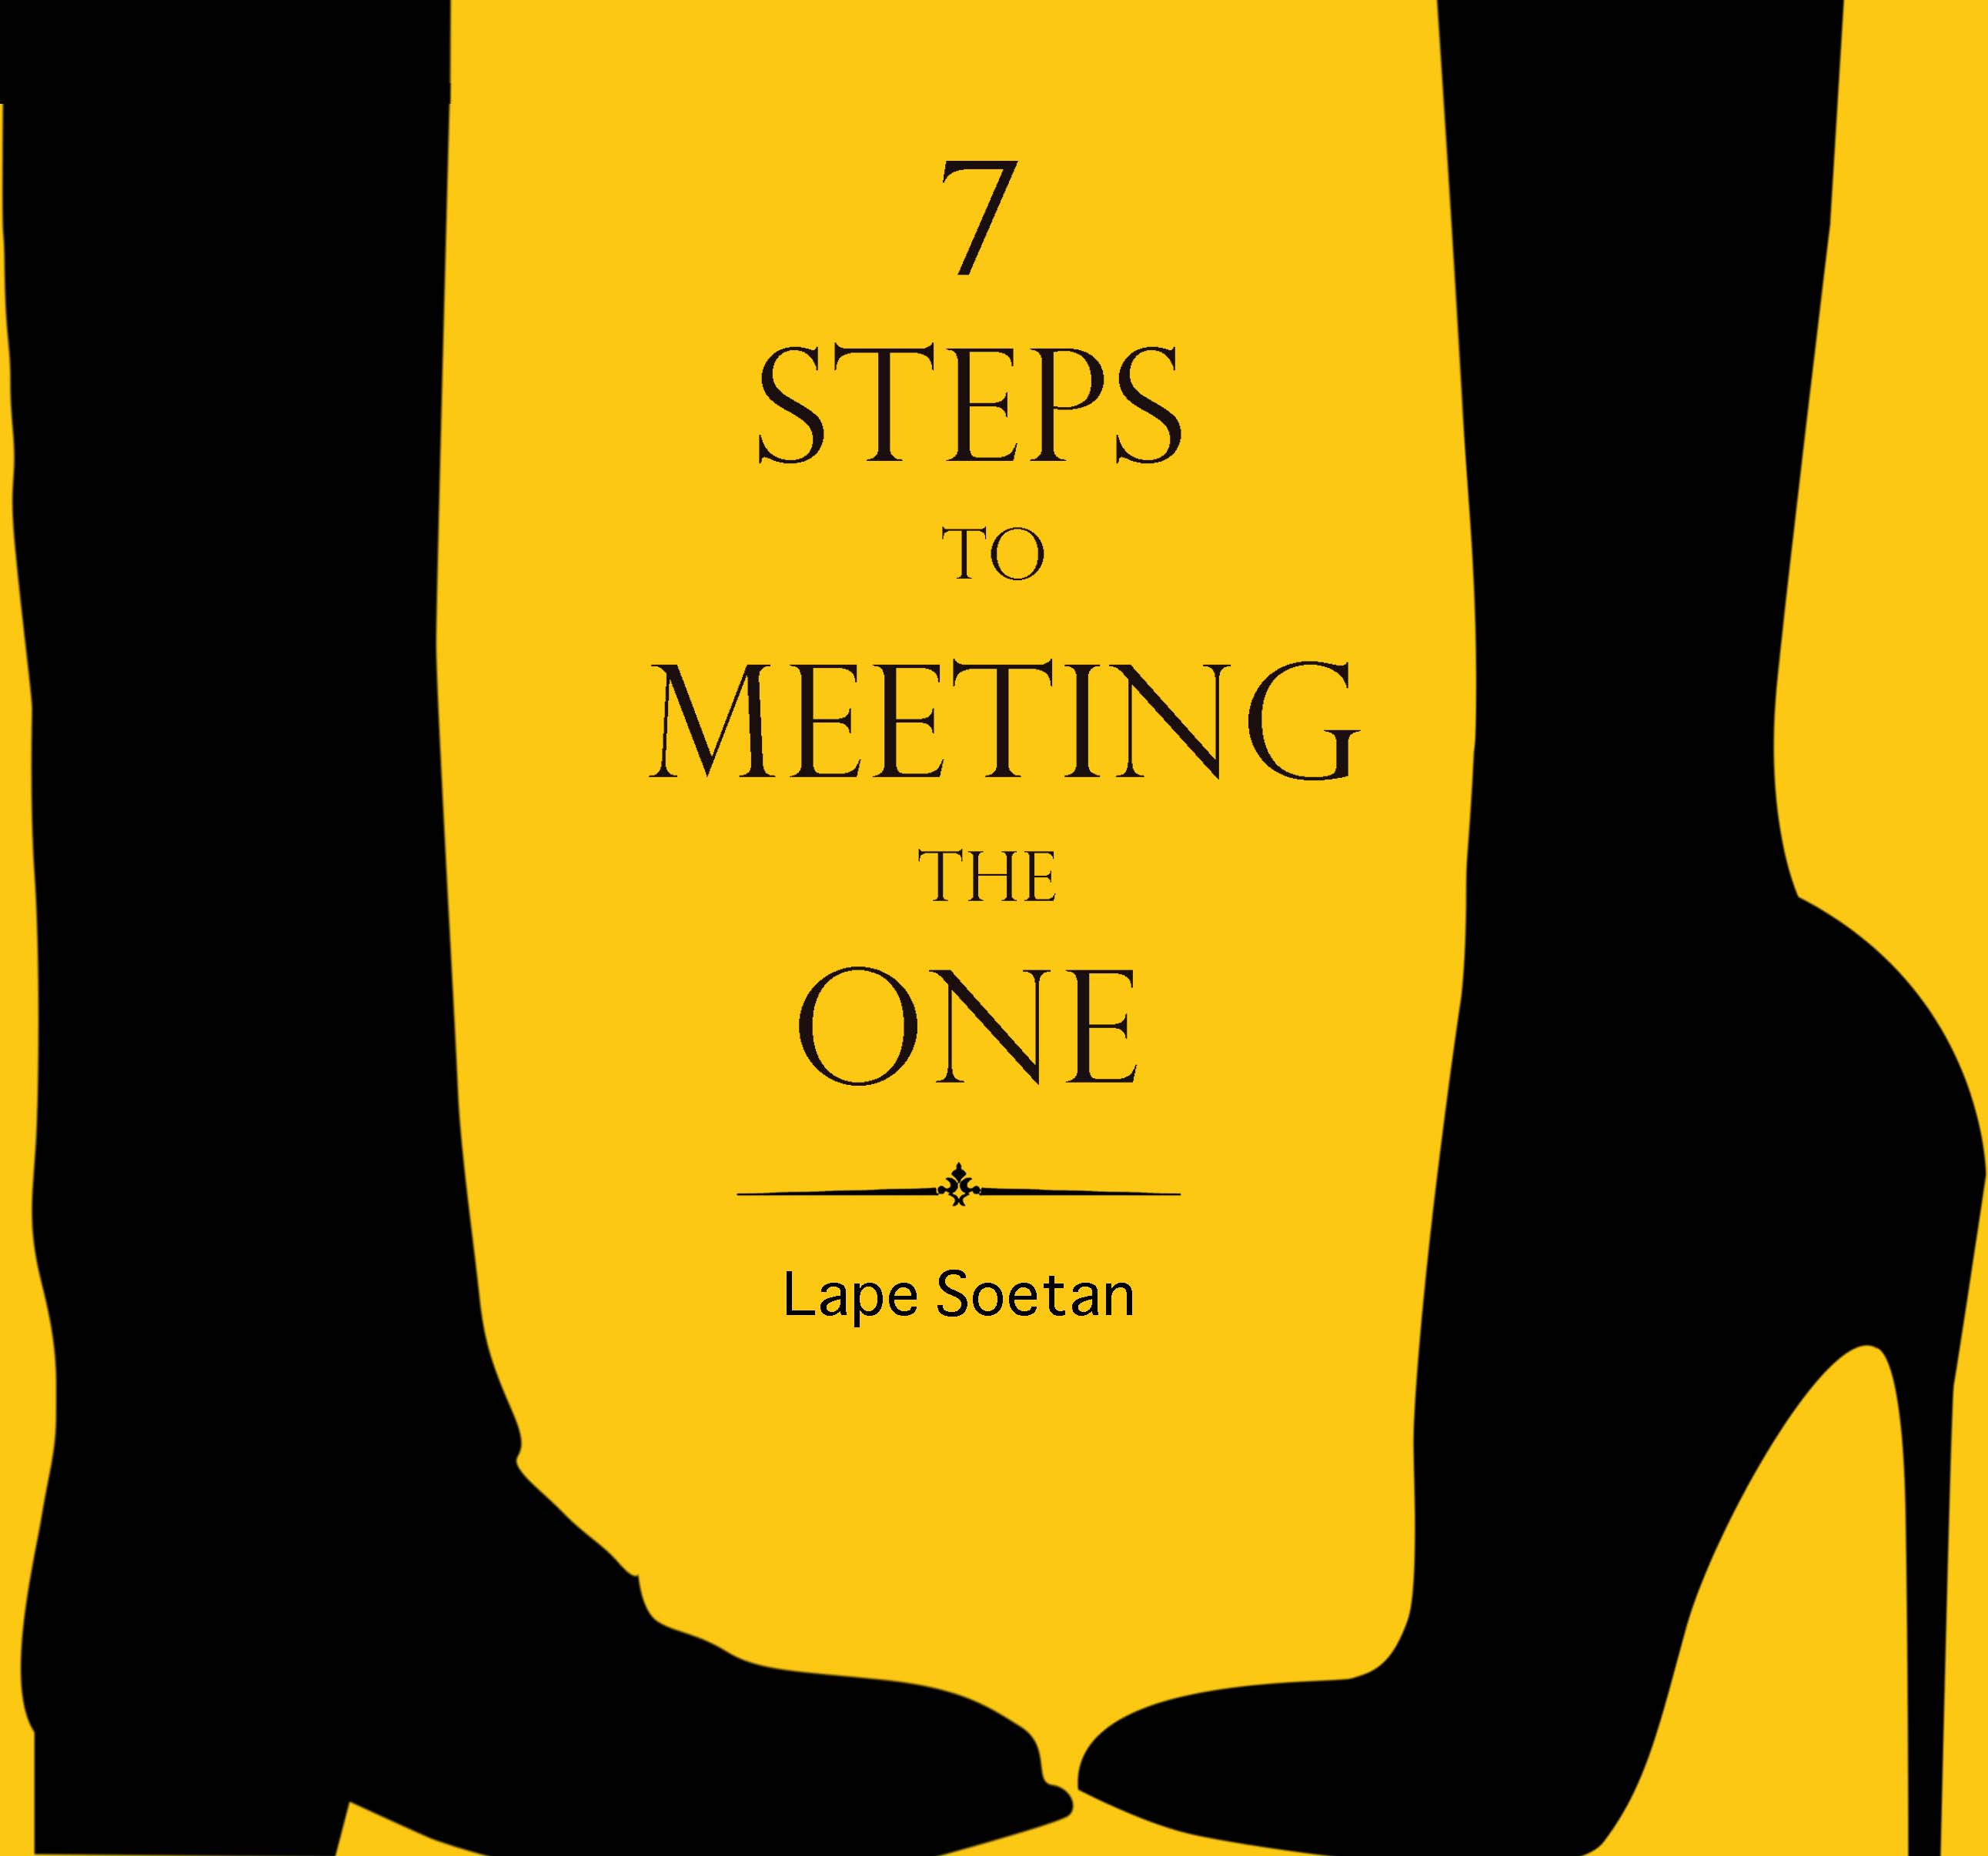 7 steps to meeting the one by lape soetan